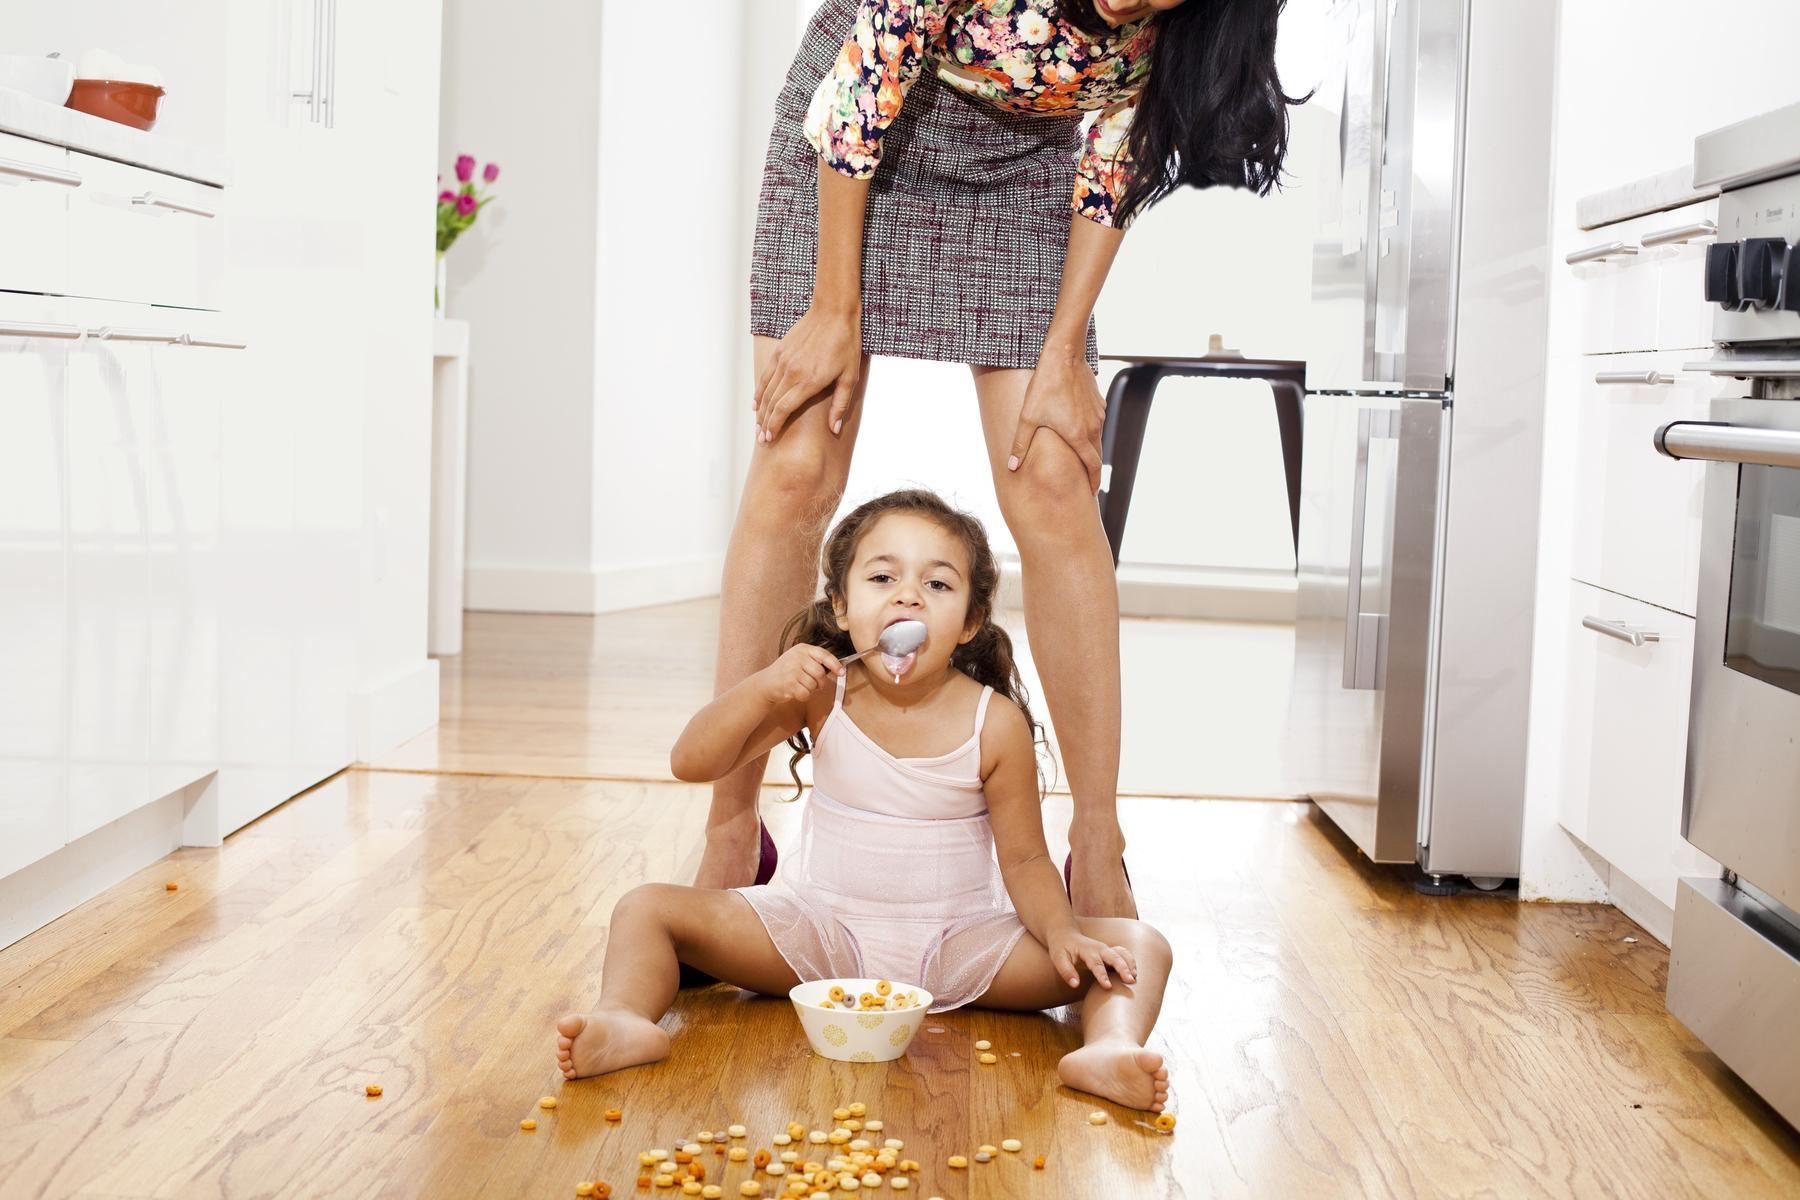 daughter eating cereal and sitting on floor